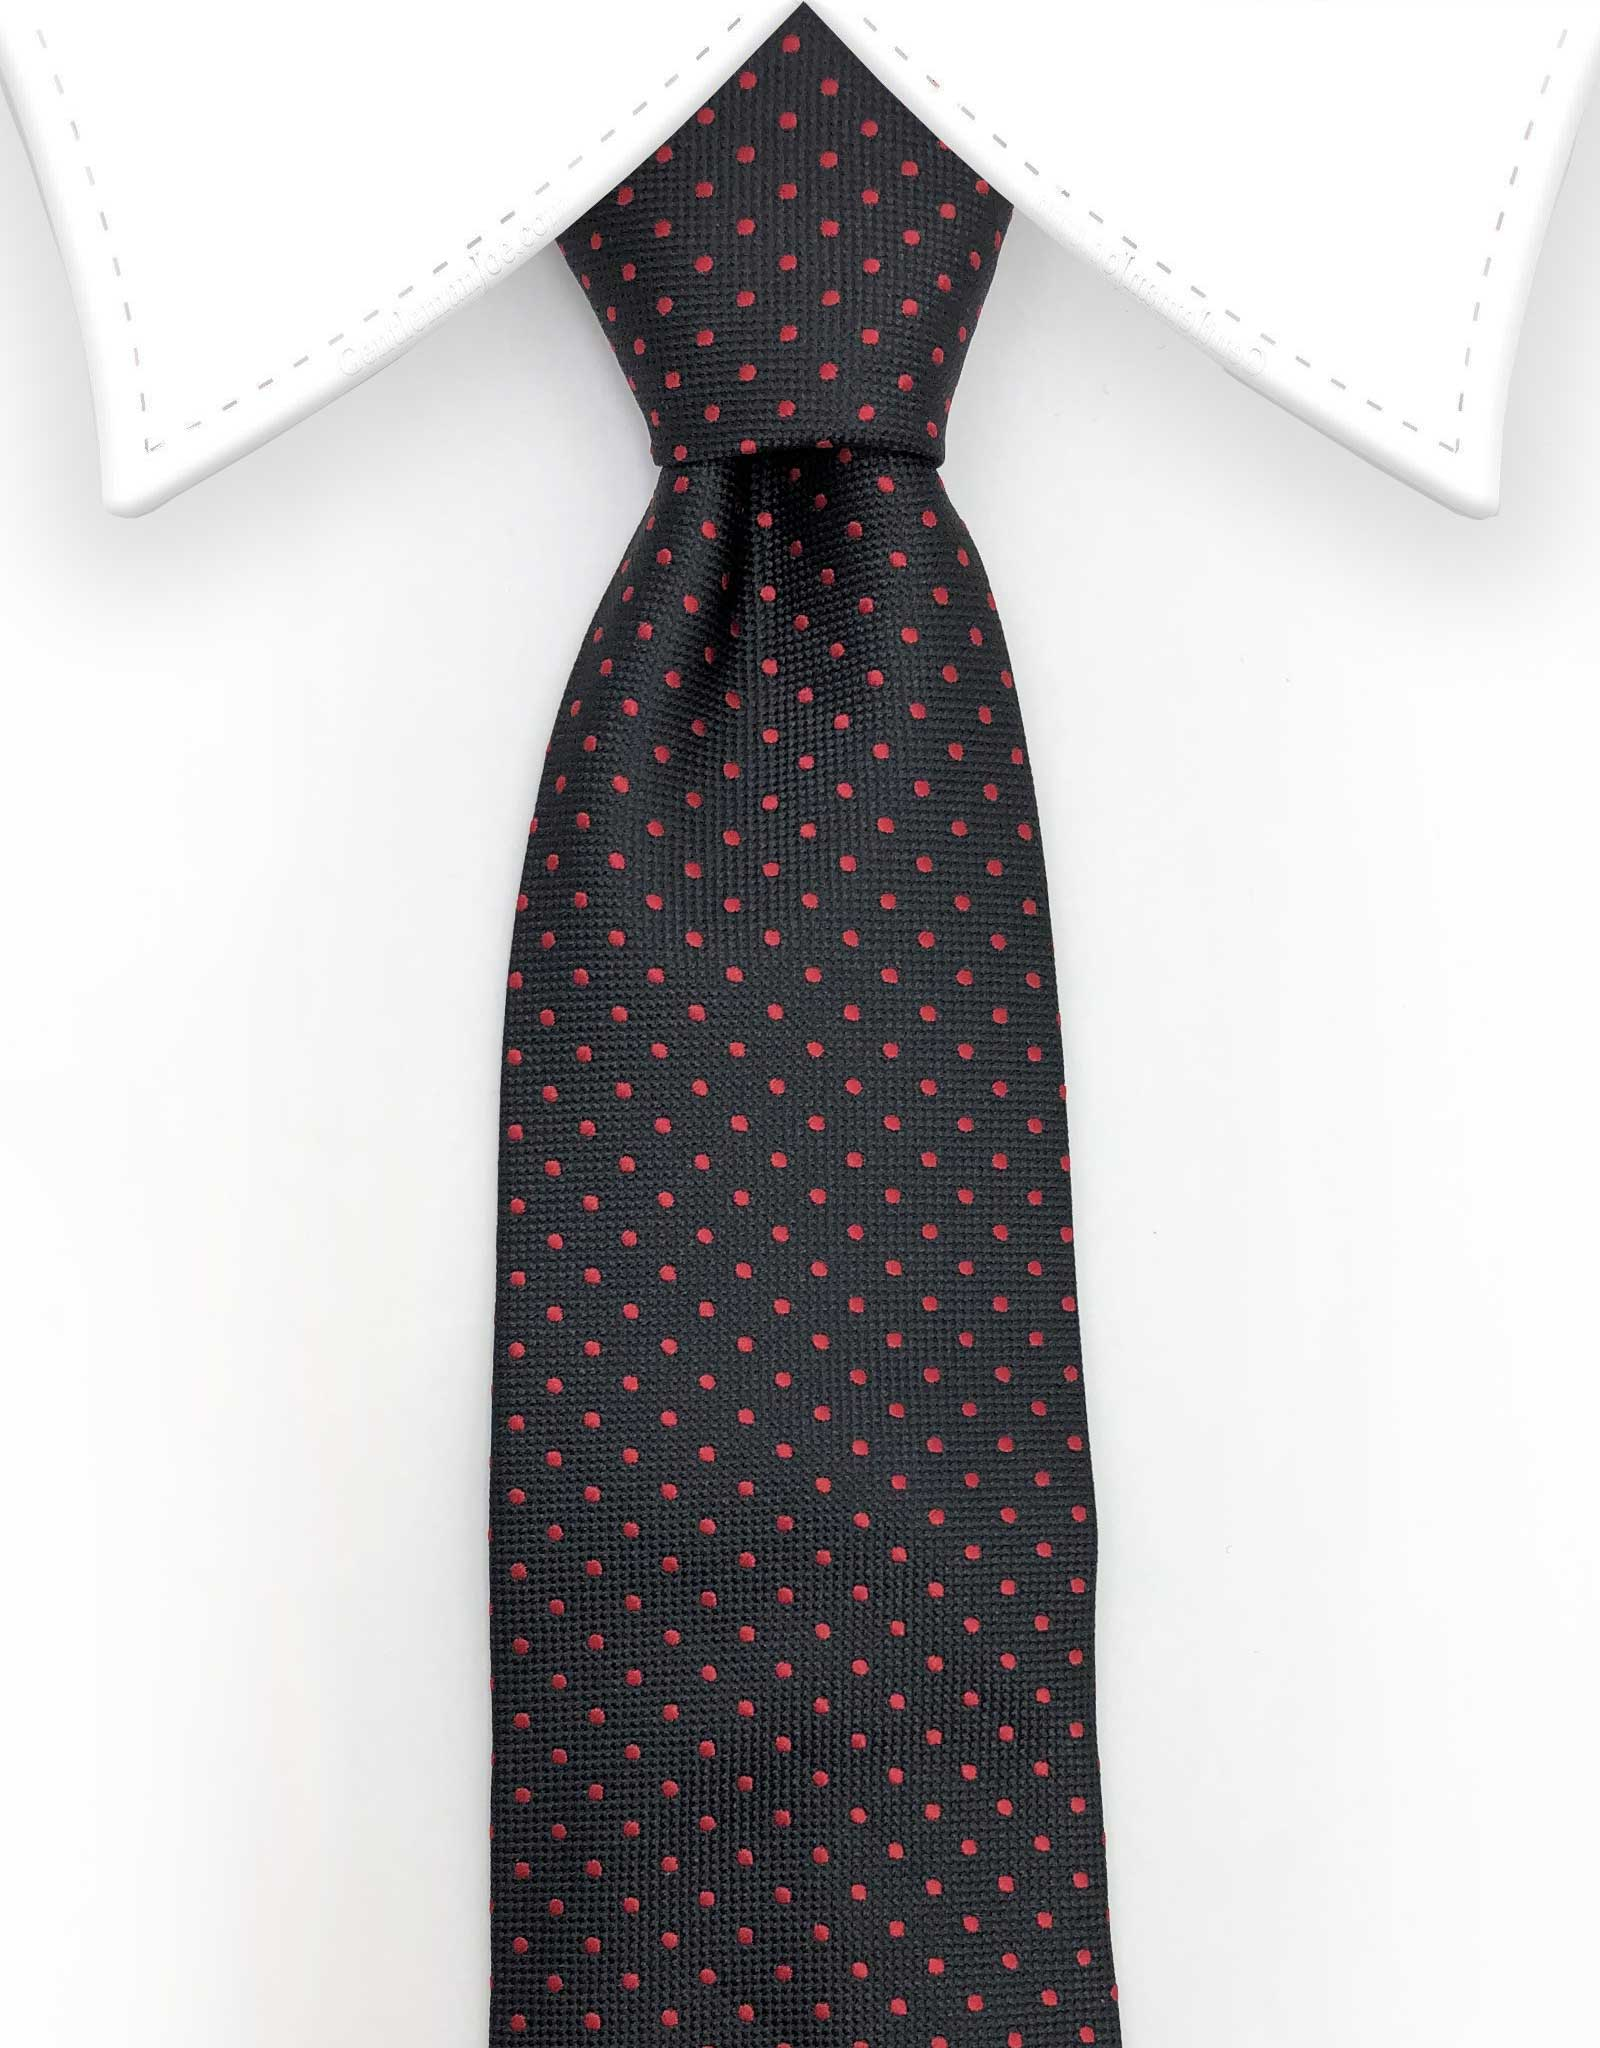 black tie with red dots